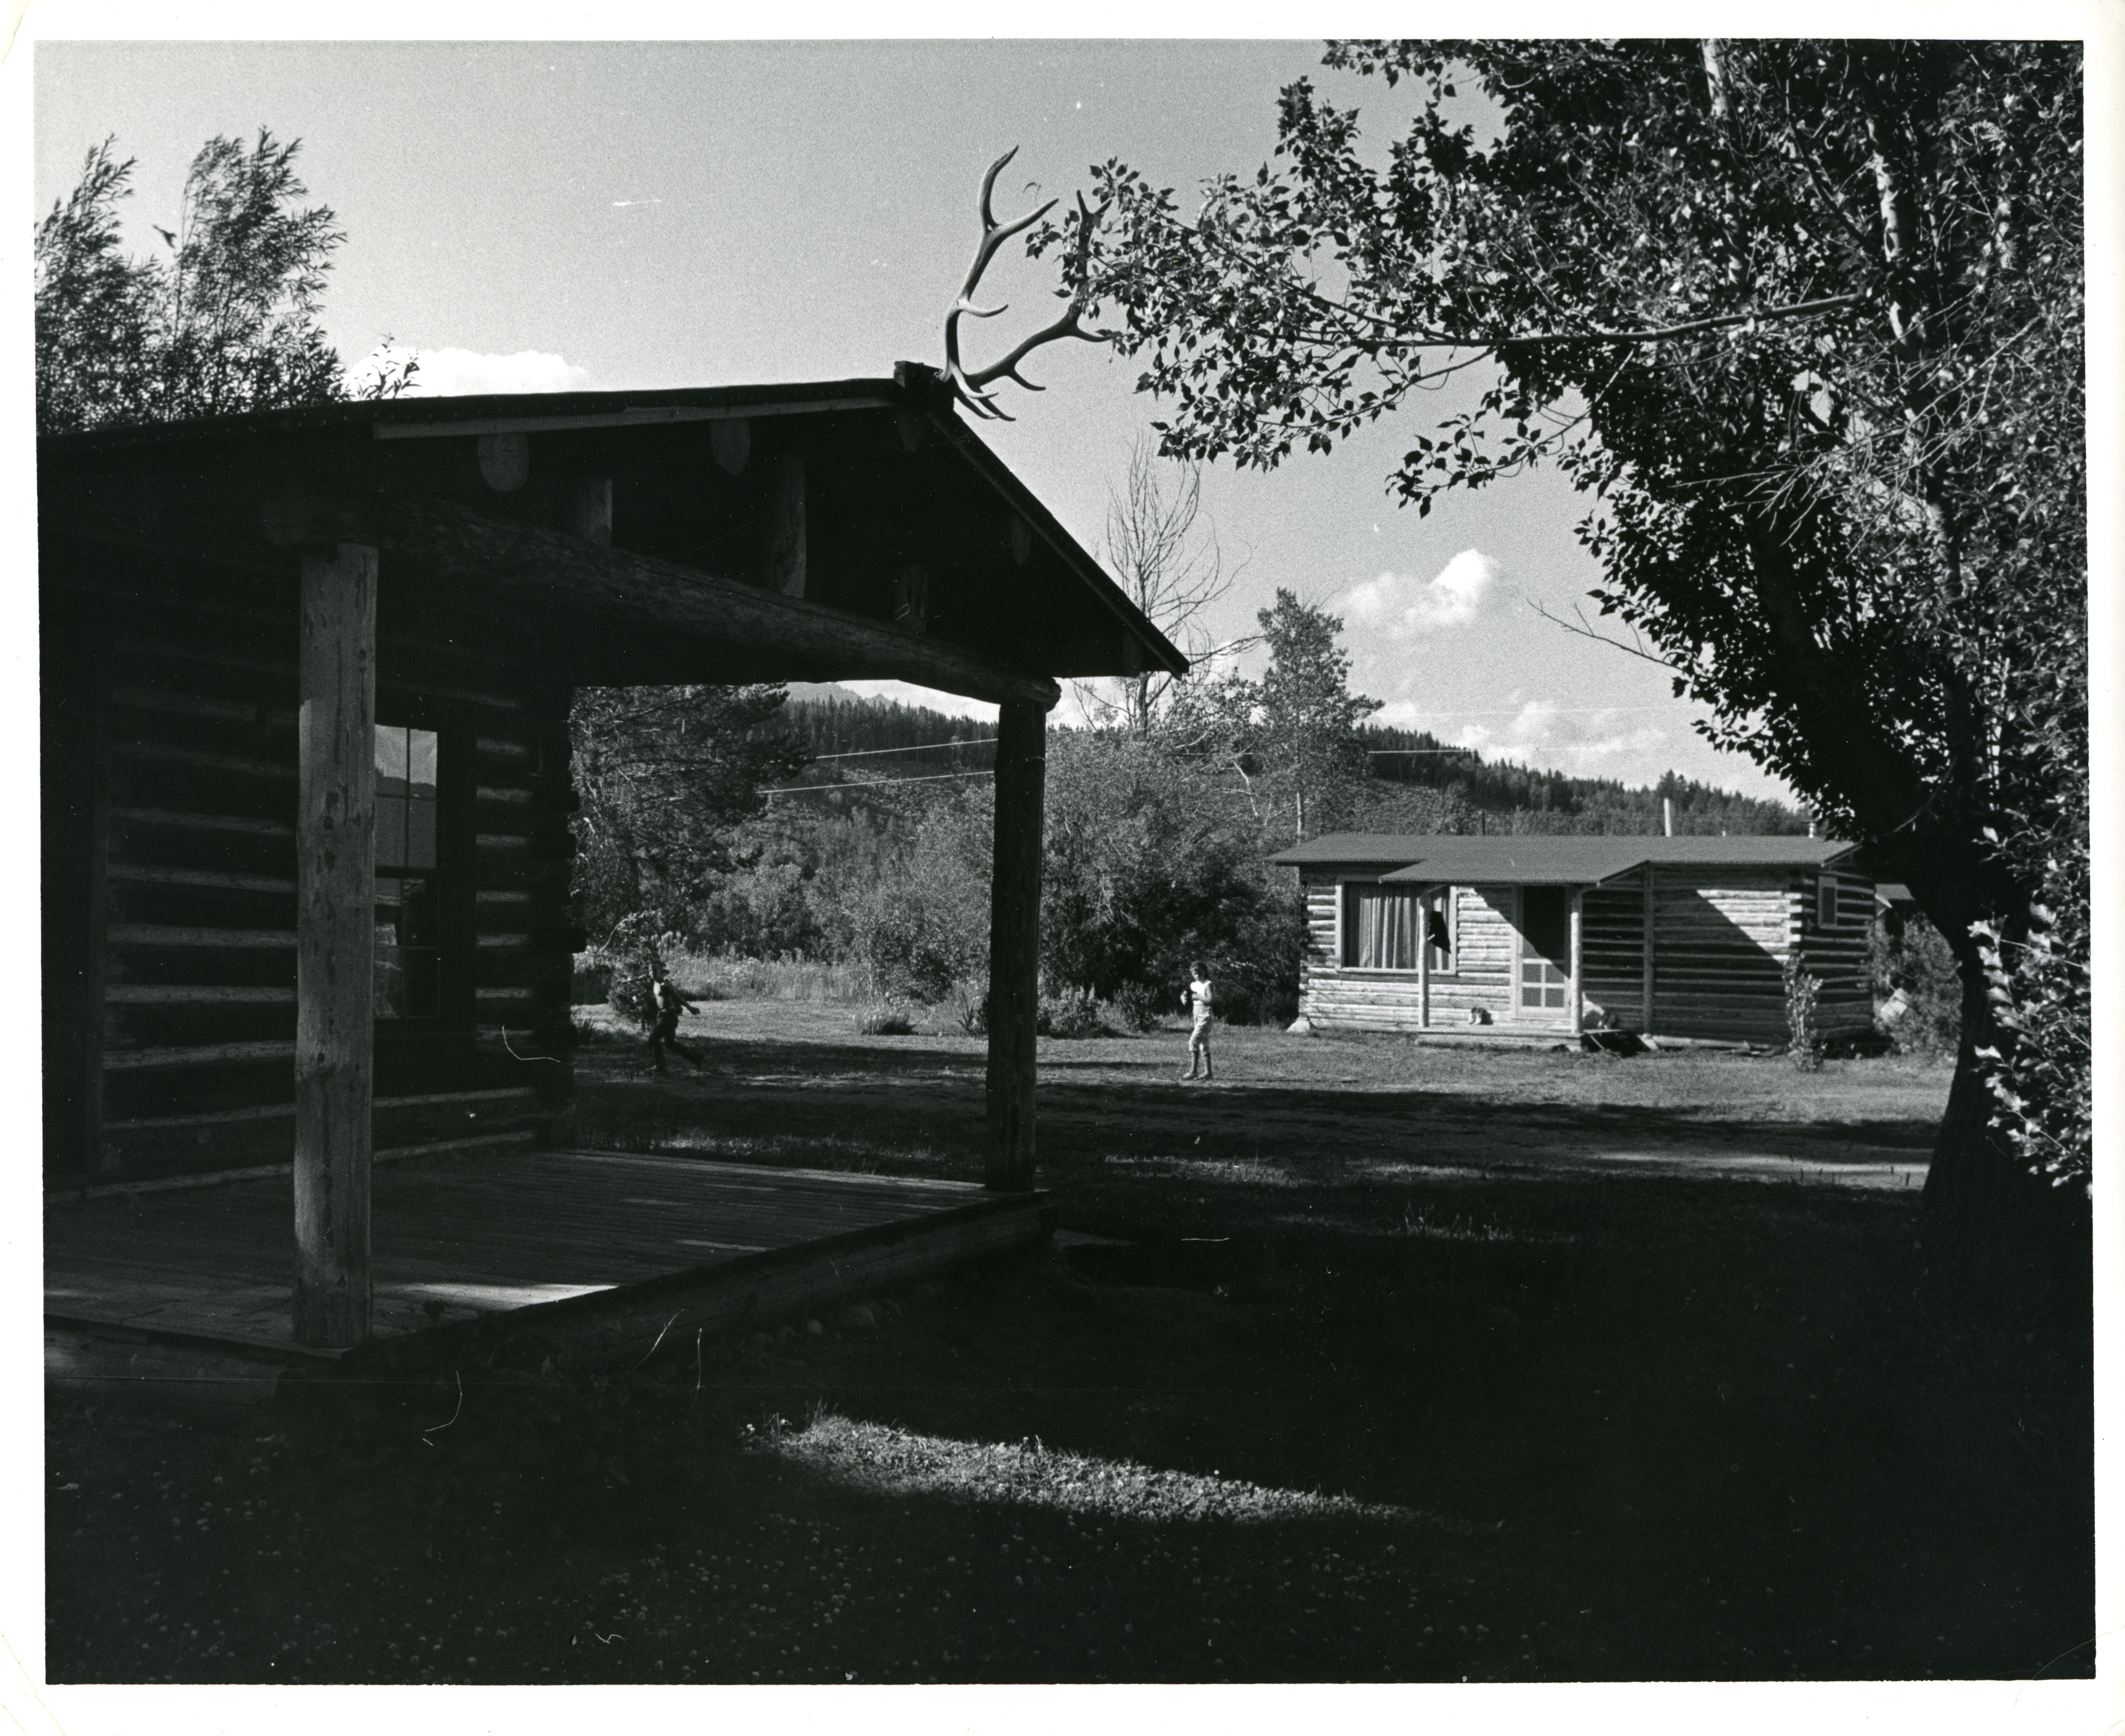 Down home ranch pictures wyoming.